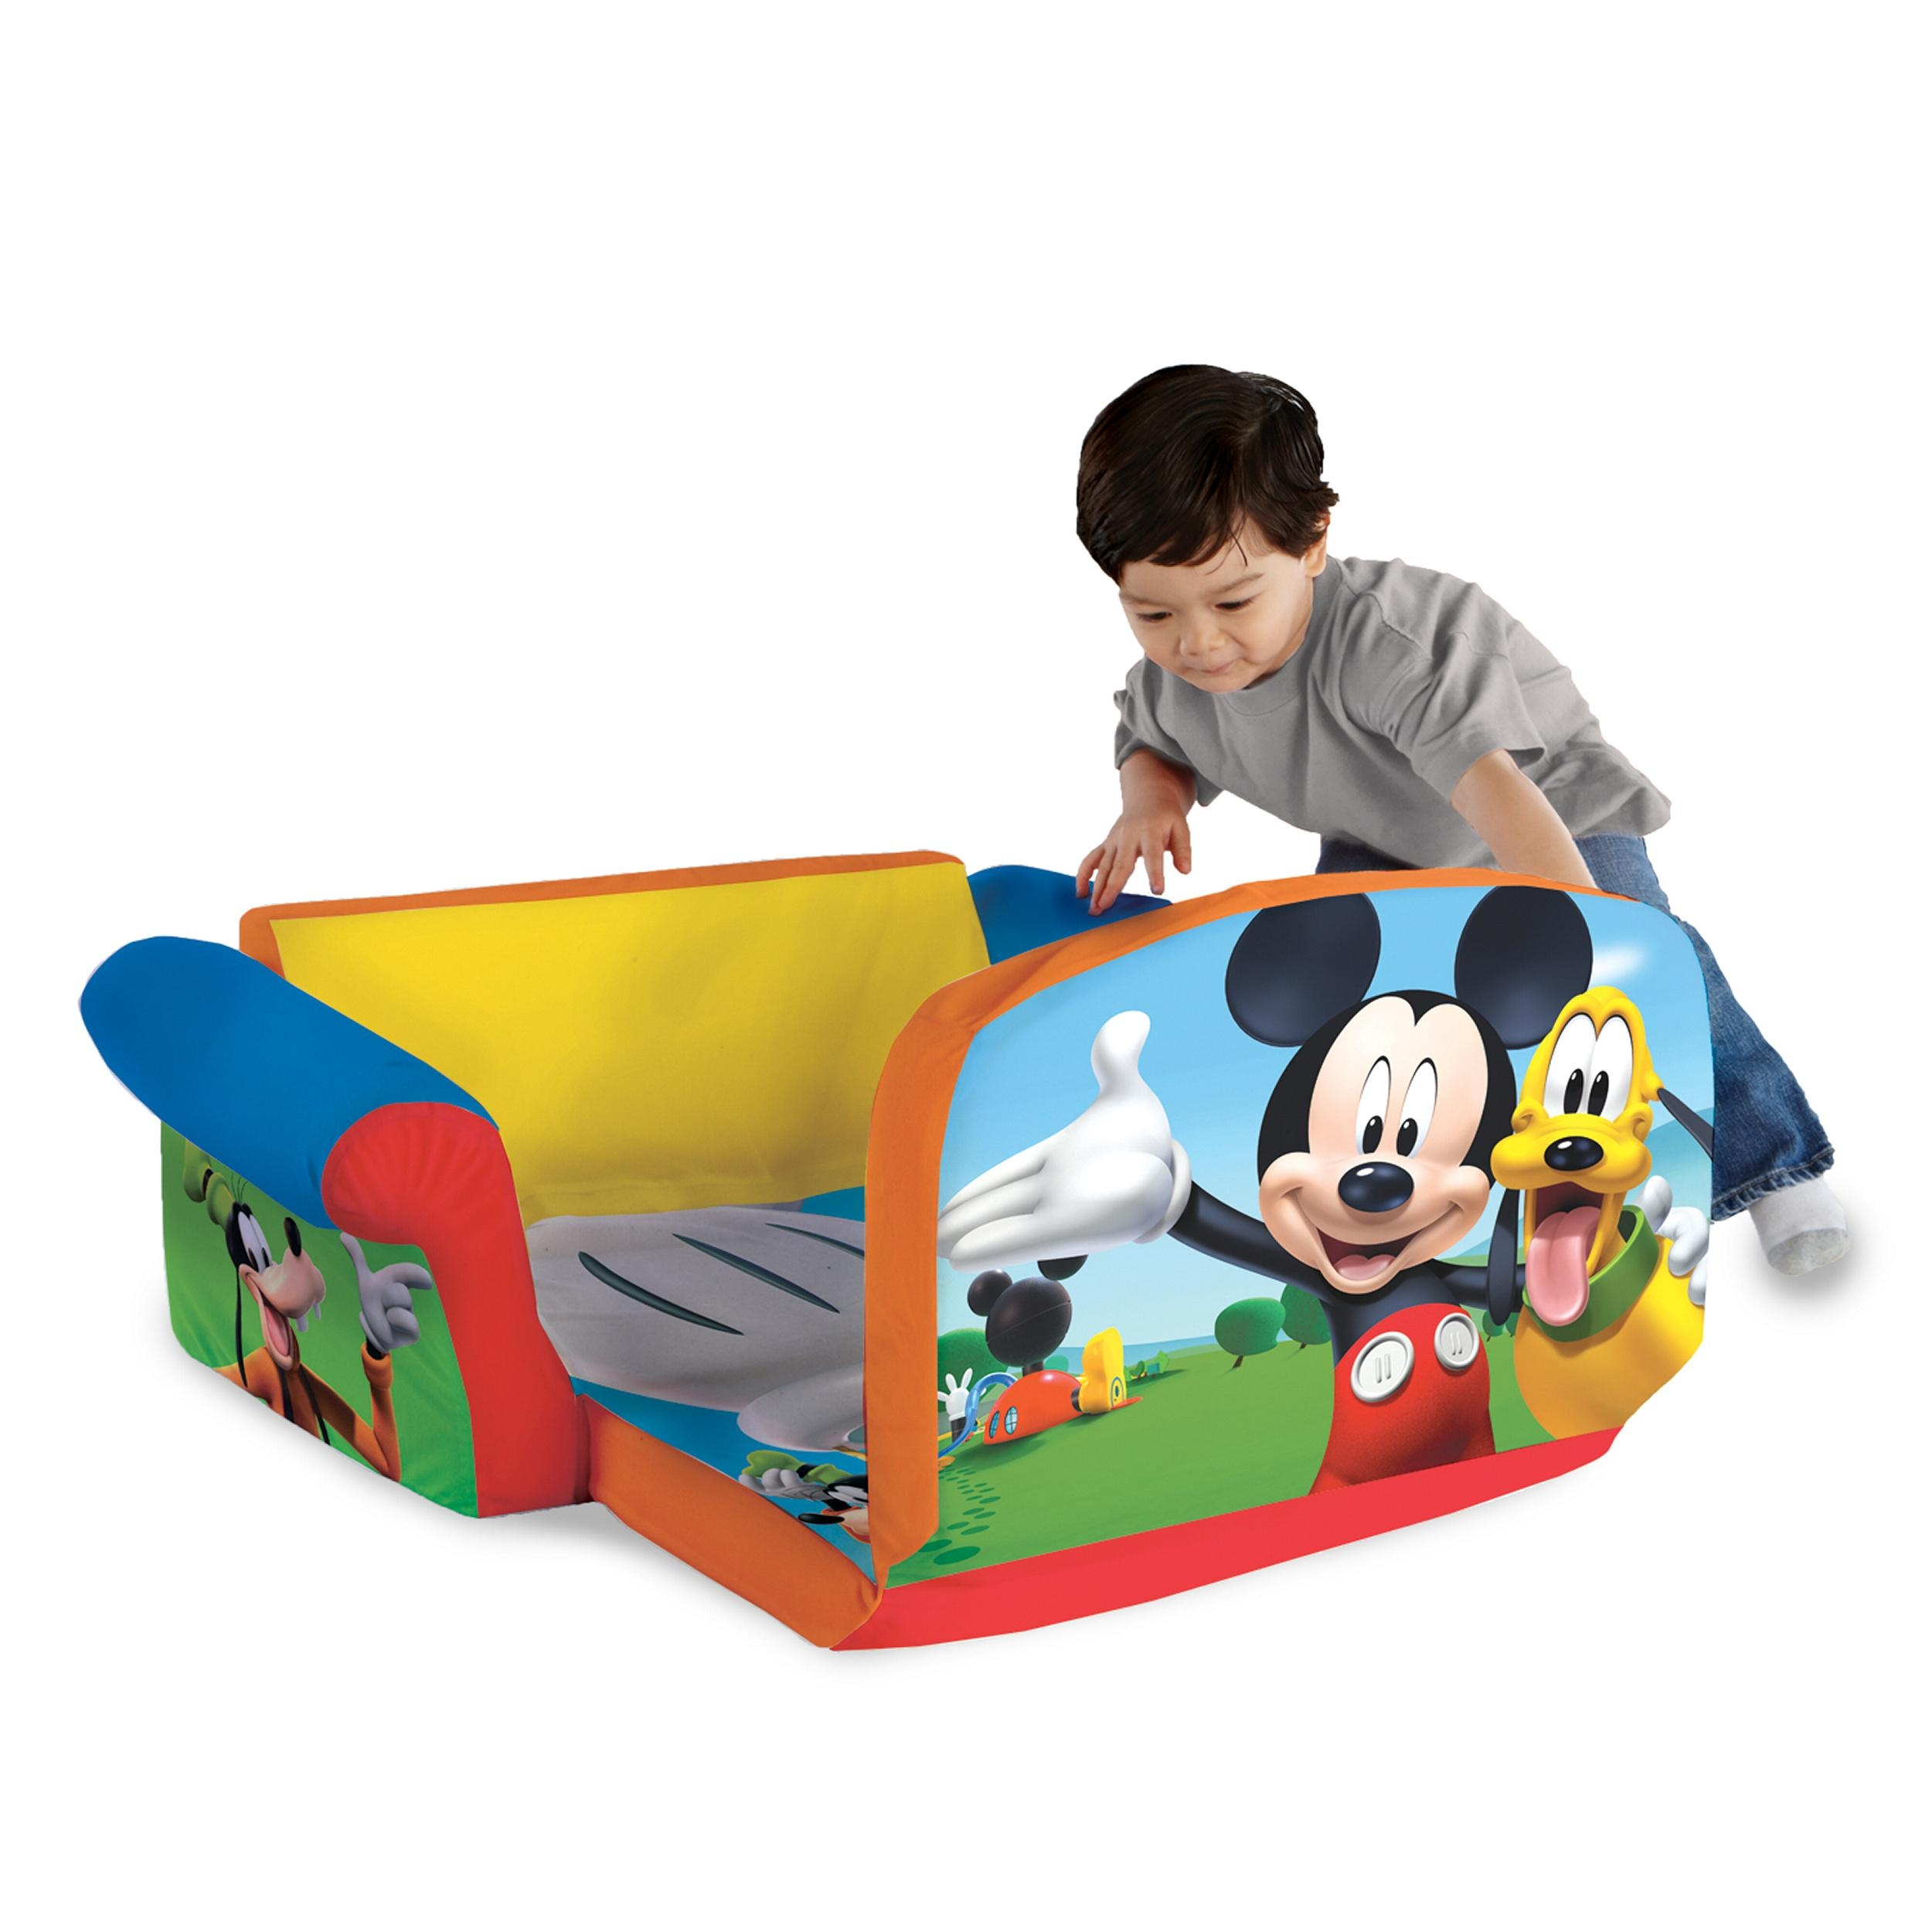 Marshmallow Furniture, Children's 2 In 1 Flip Open Foam Sofa Within Mickey Mouse Clubhouse Couches (View 16 of 20)